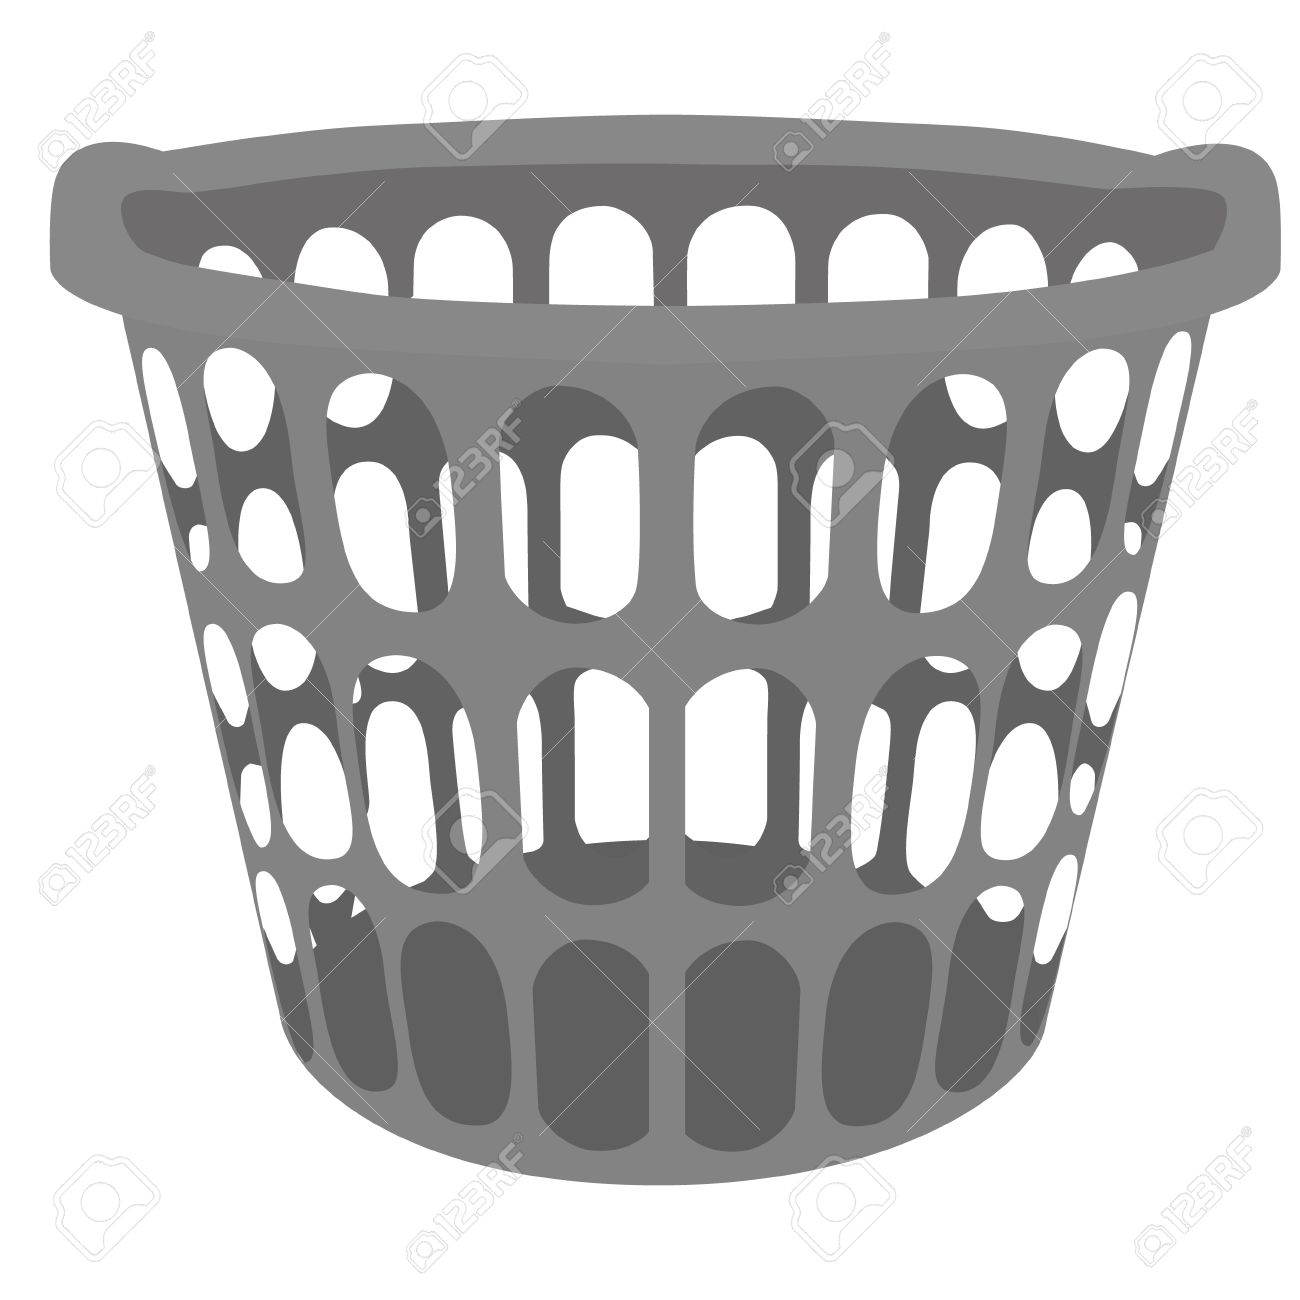 hight resolution of vector vector illustration grey plastic laundry basket basket for clothes